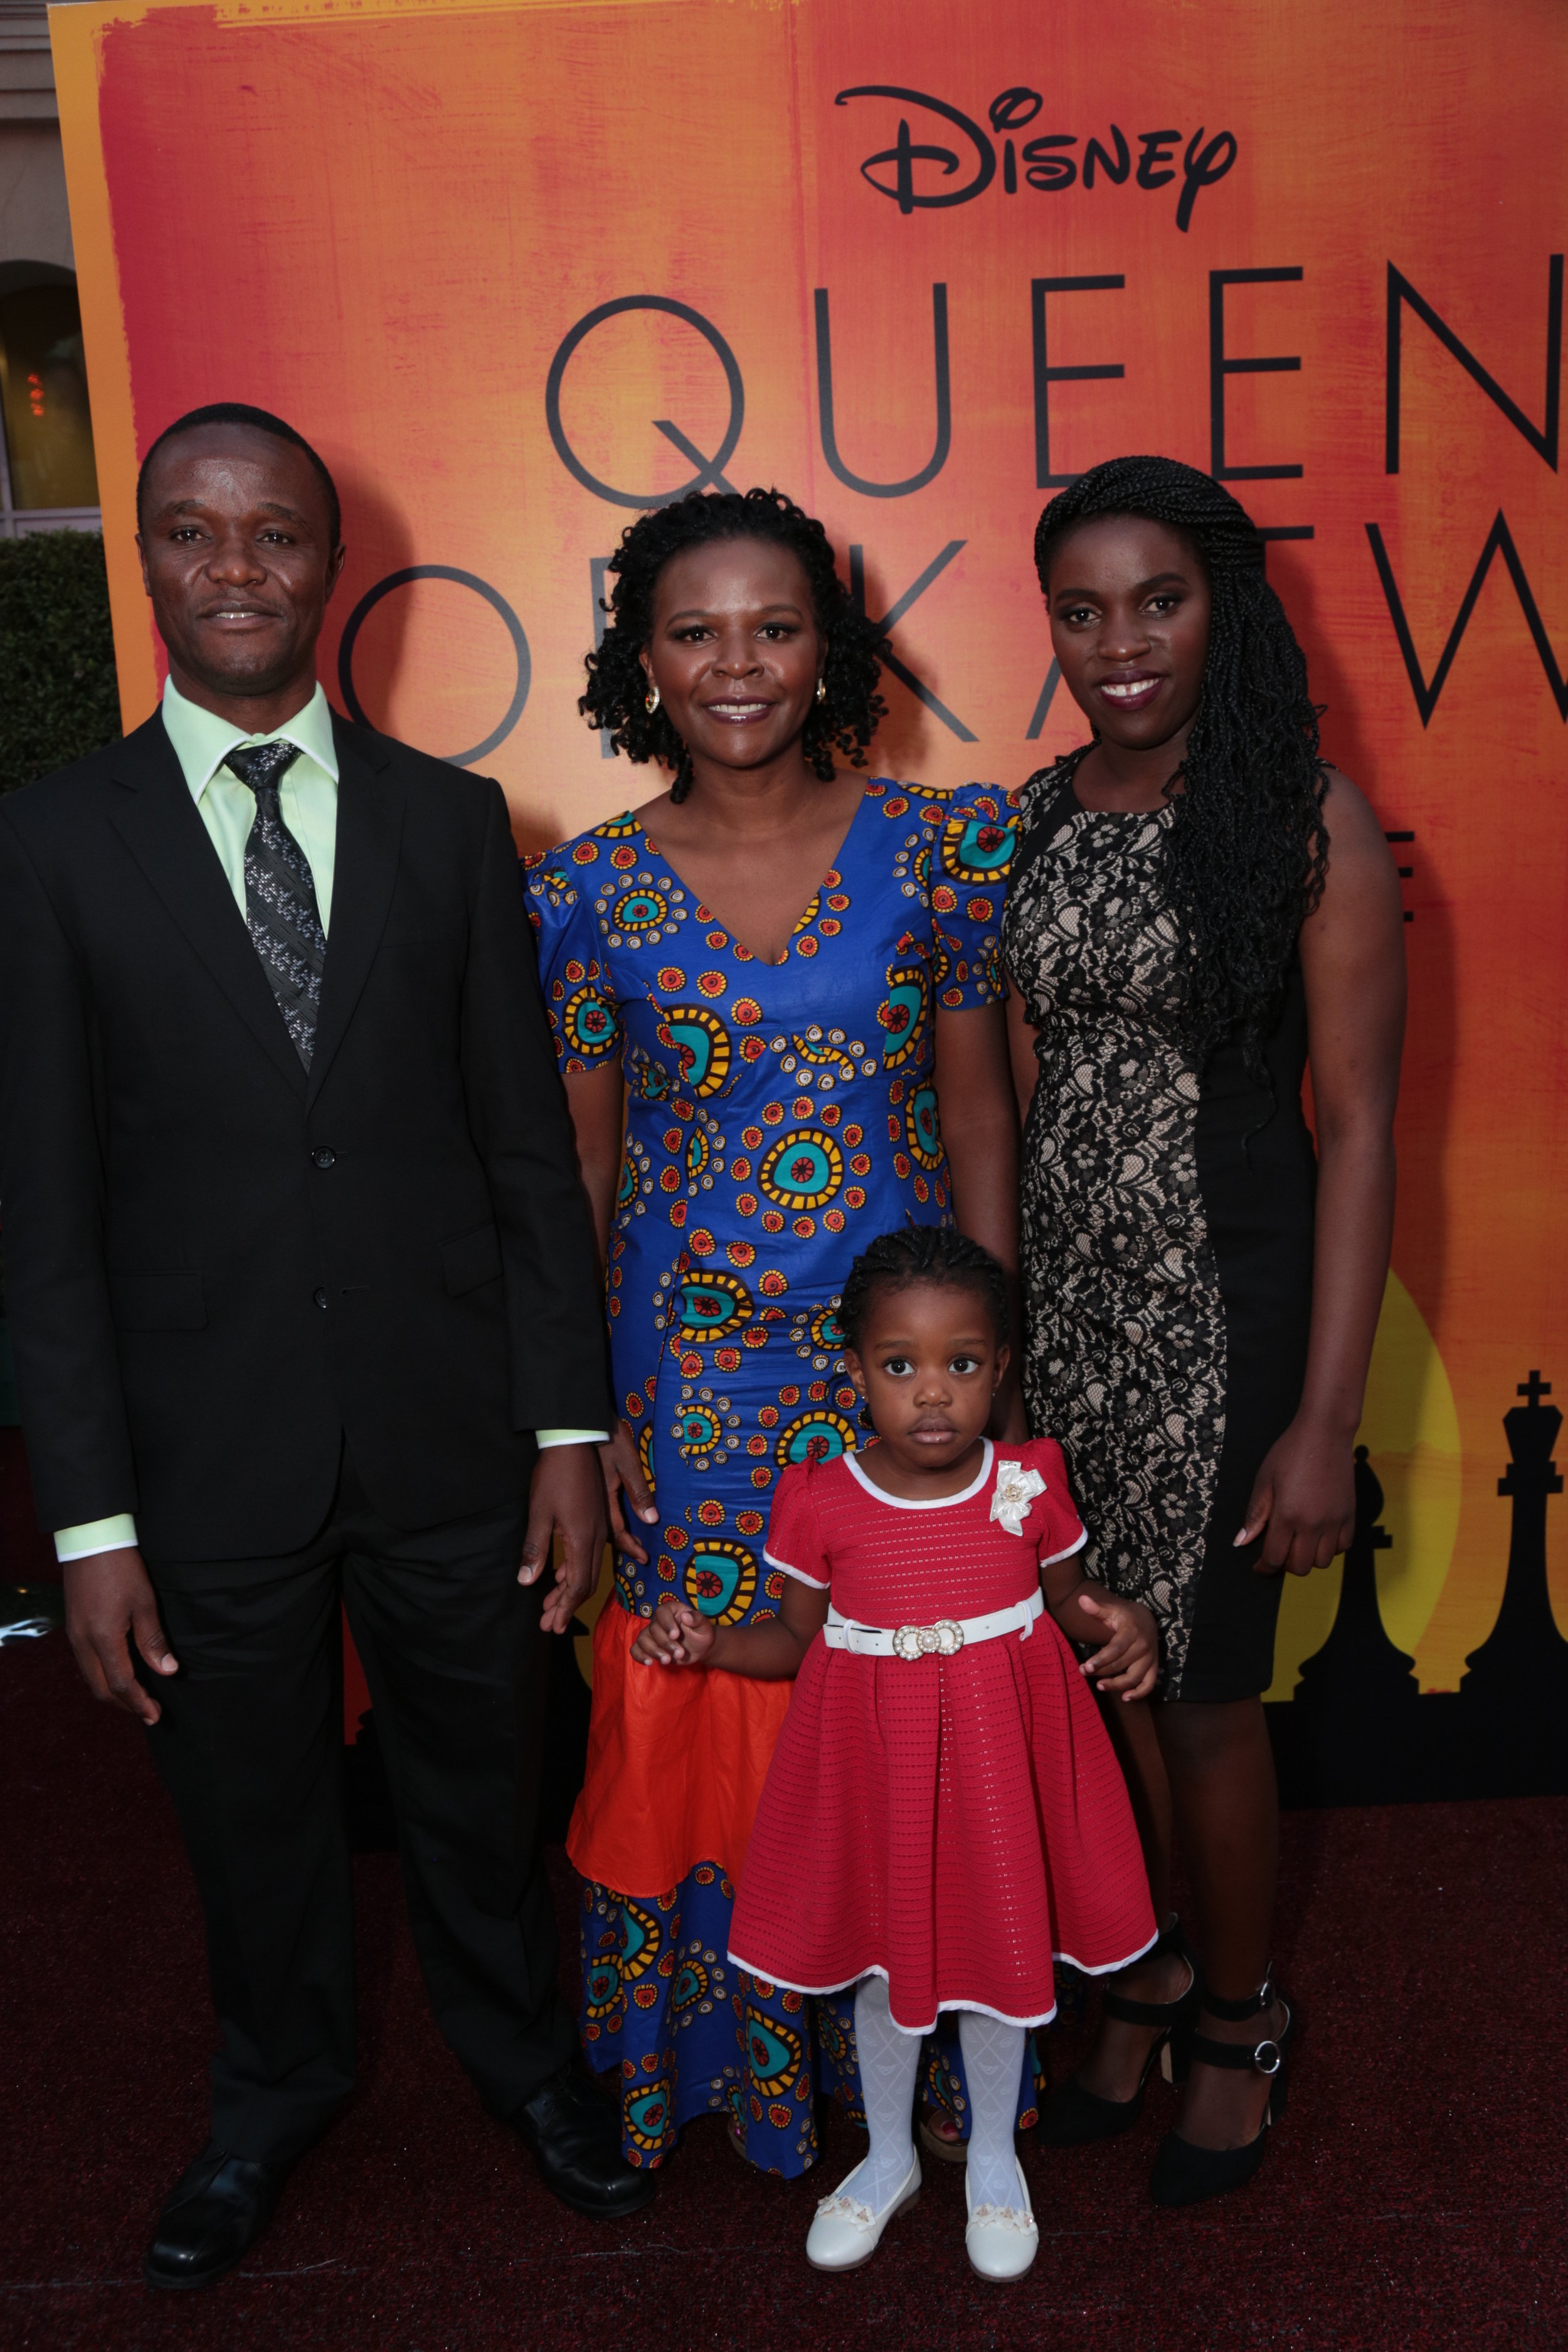 Robert Katende, Sara Katende, Phiona Mutesi and Hope Katende arrive at the U.S. premiere of Disney's Queen of Katwe at the El Capitan Theatre in Hollywood, CA on Tuesday, September 20, 2016. (Photo: Alex J. Berliner/ABImages)